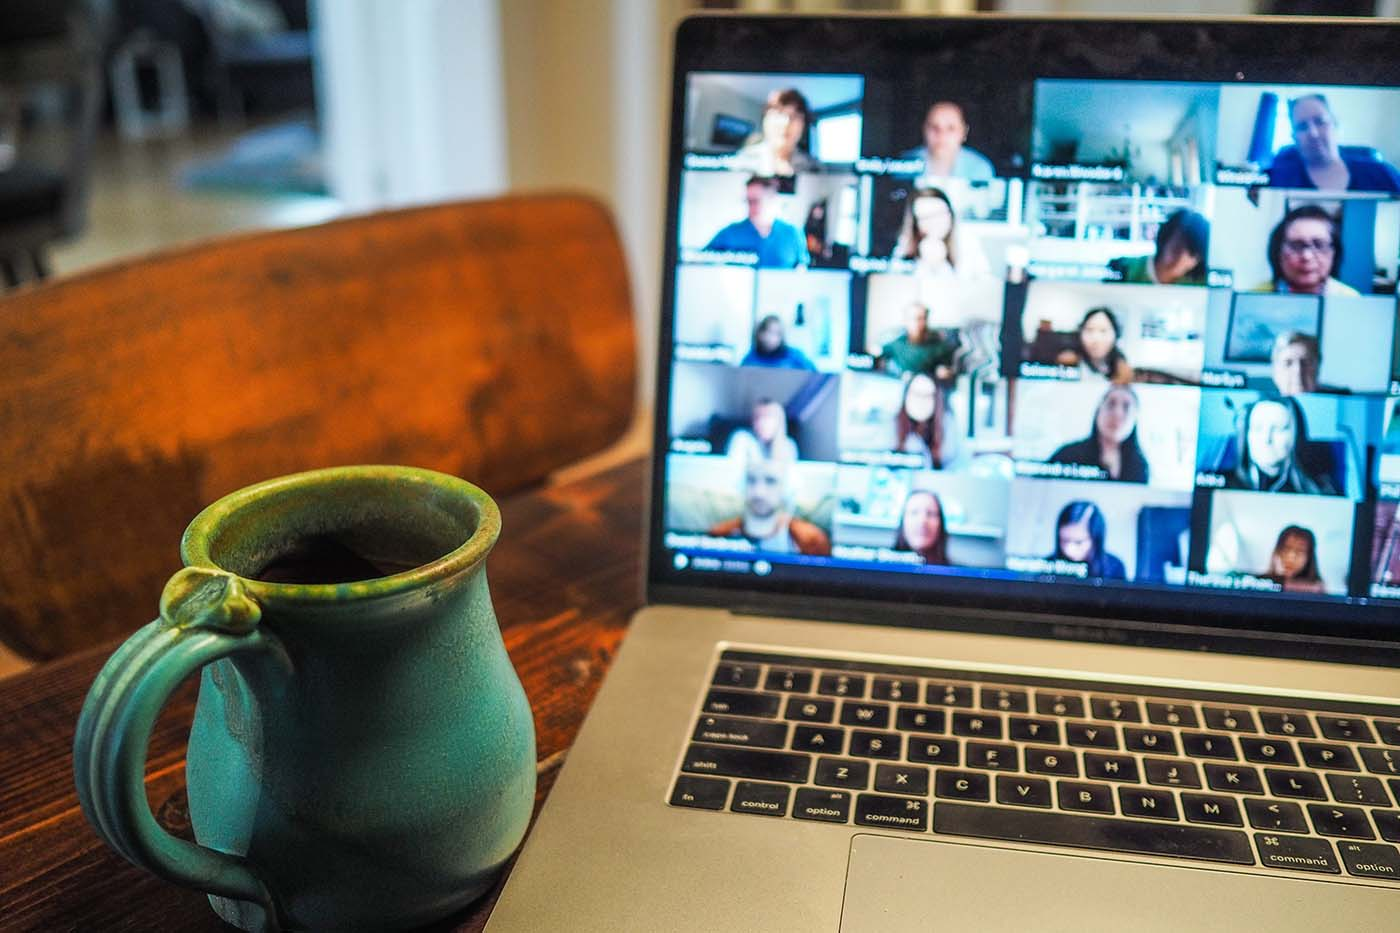 Defining the stages & structure of remote workplaces